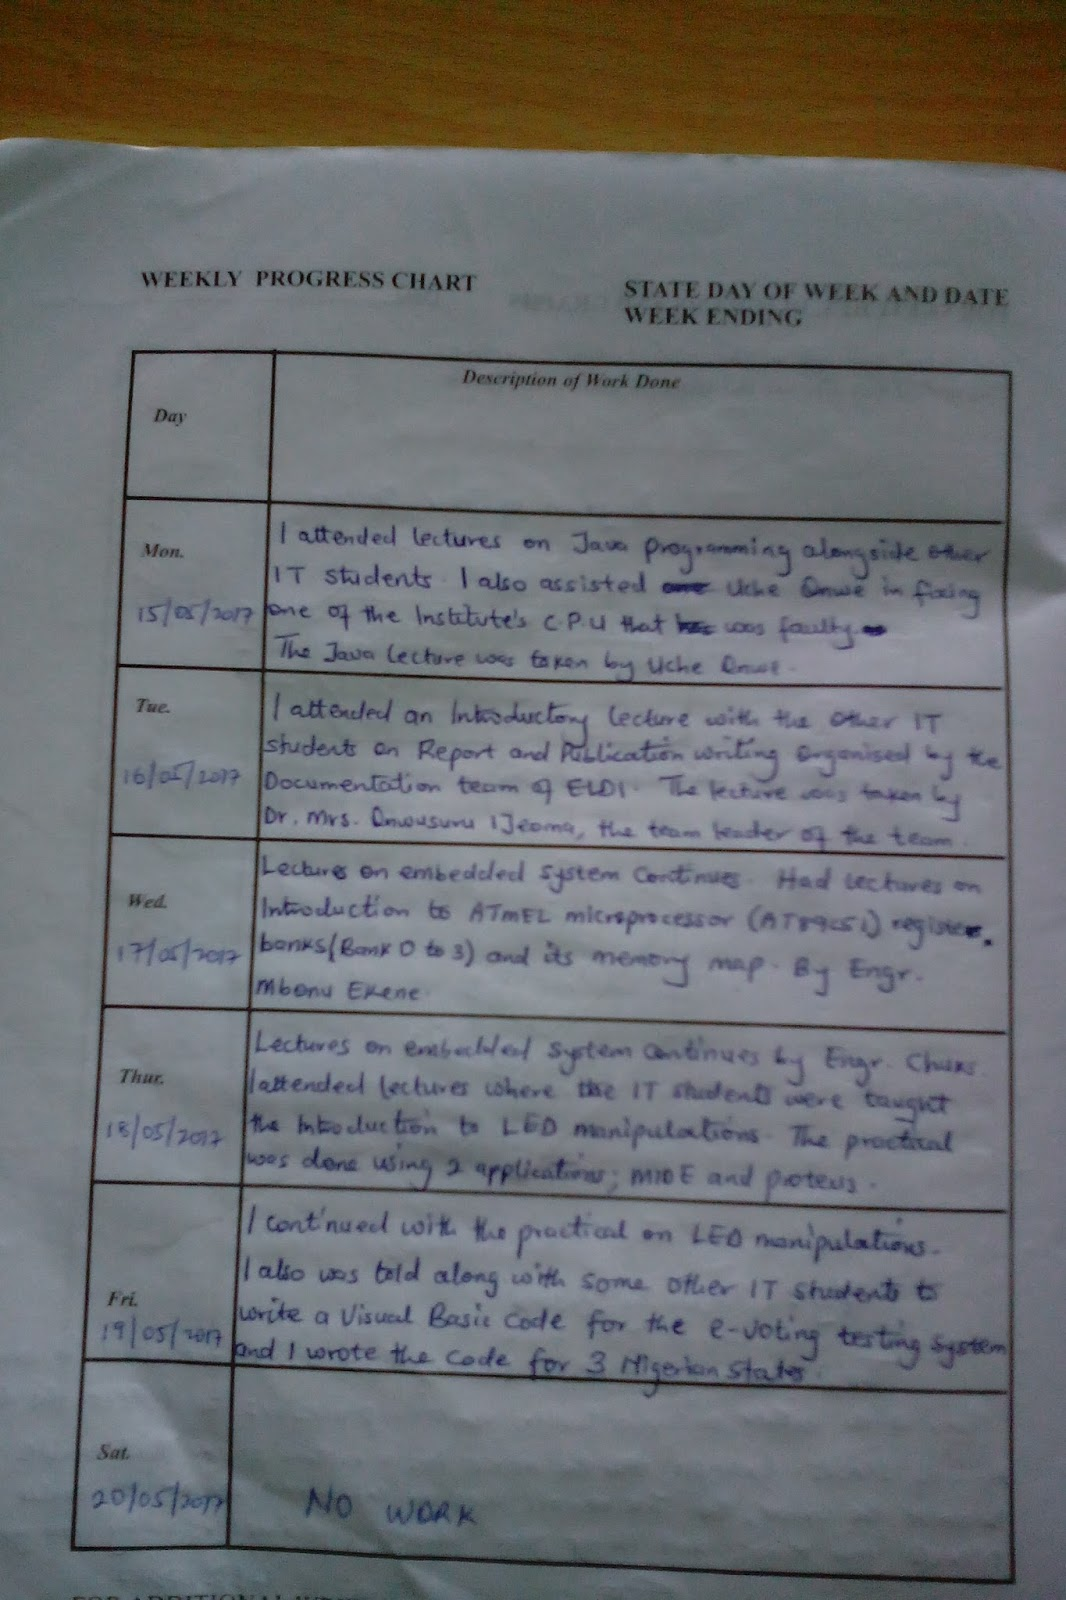 the above images shows a practical example of the main body of the the log book where the students record the daily experiences gained and activities